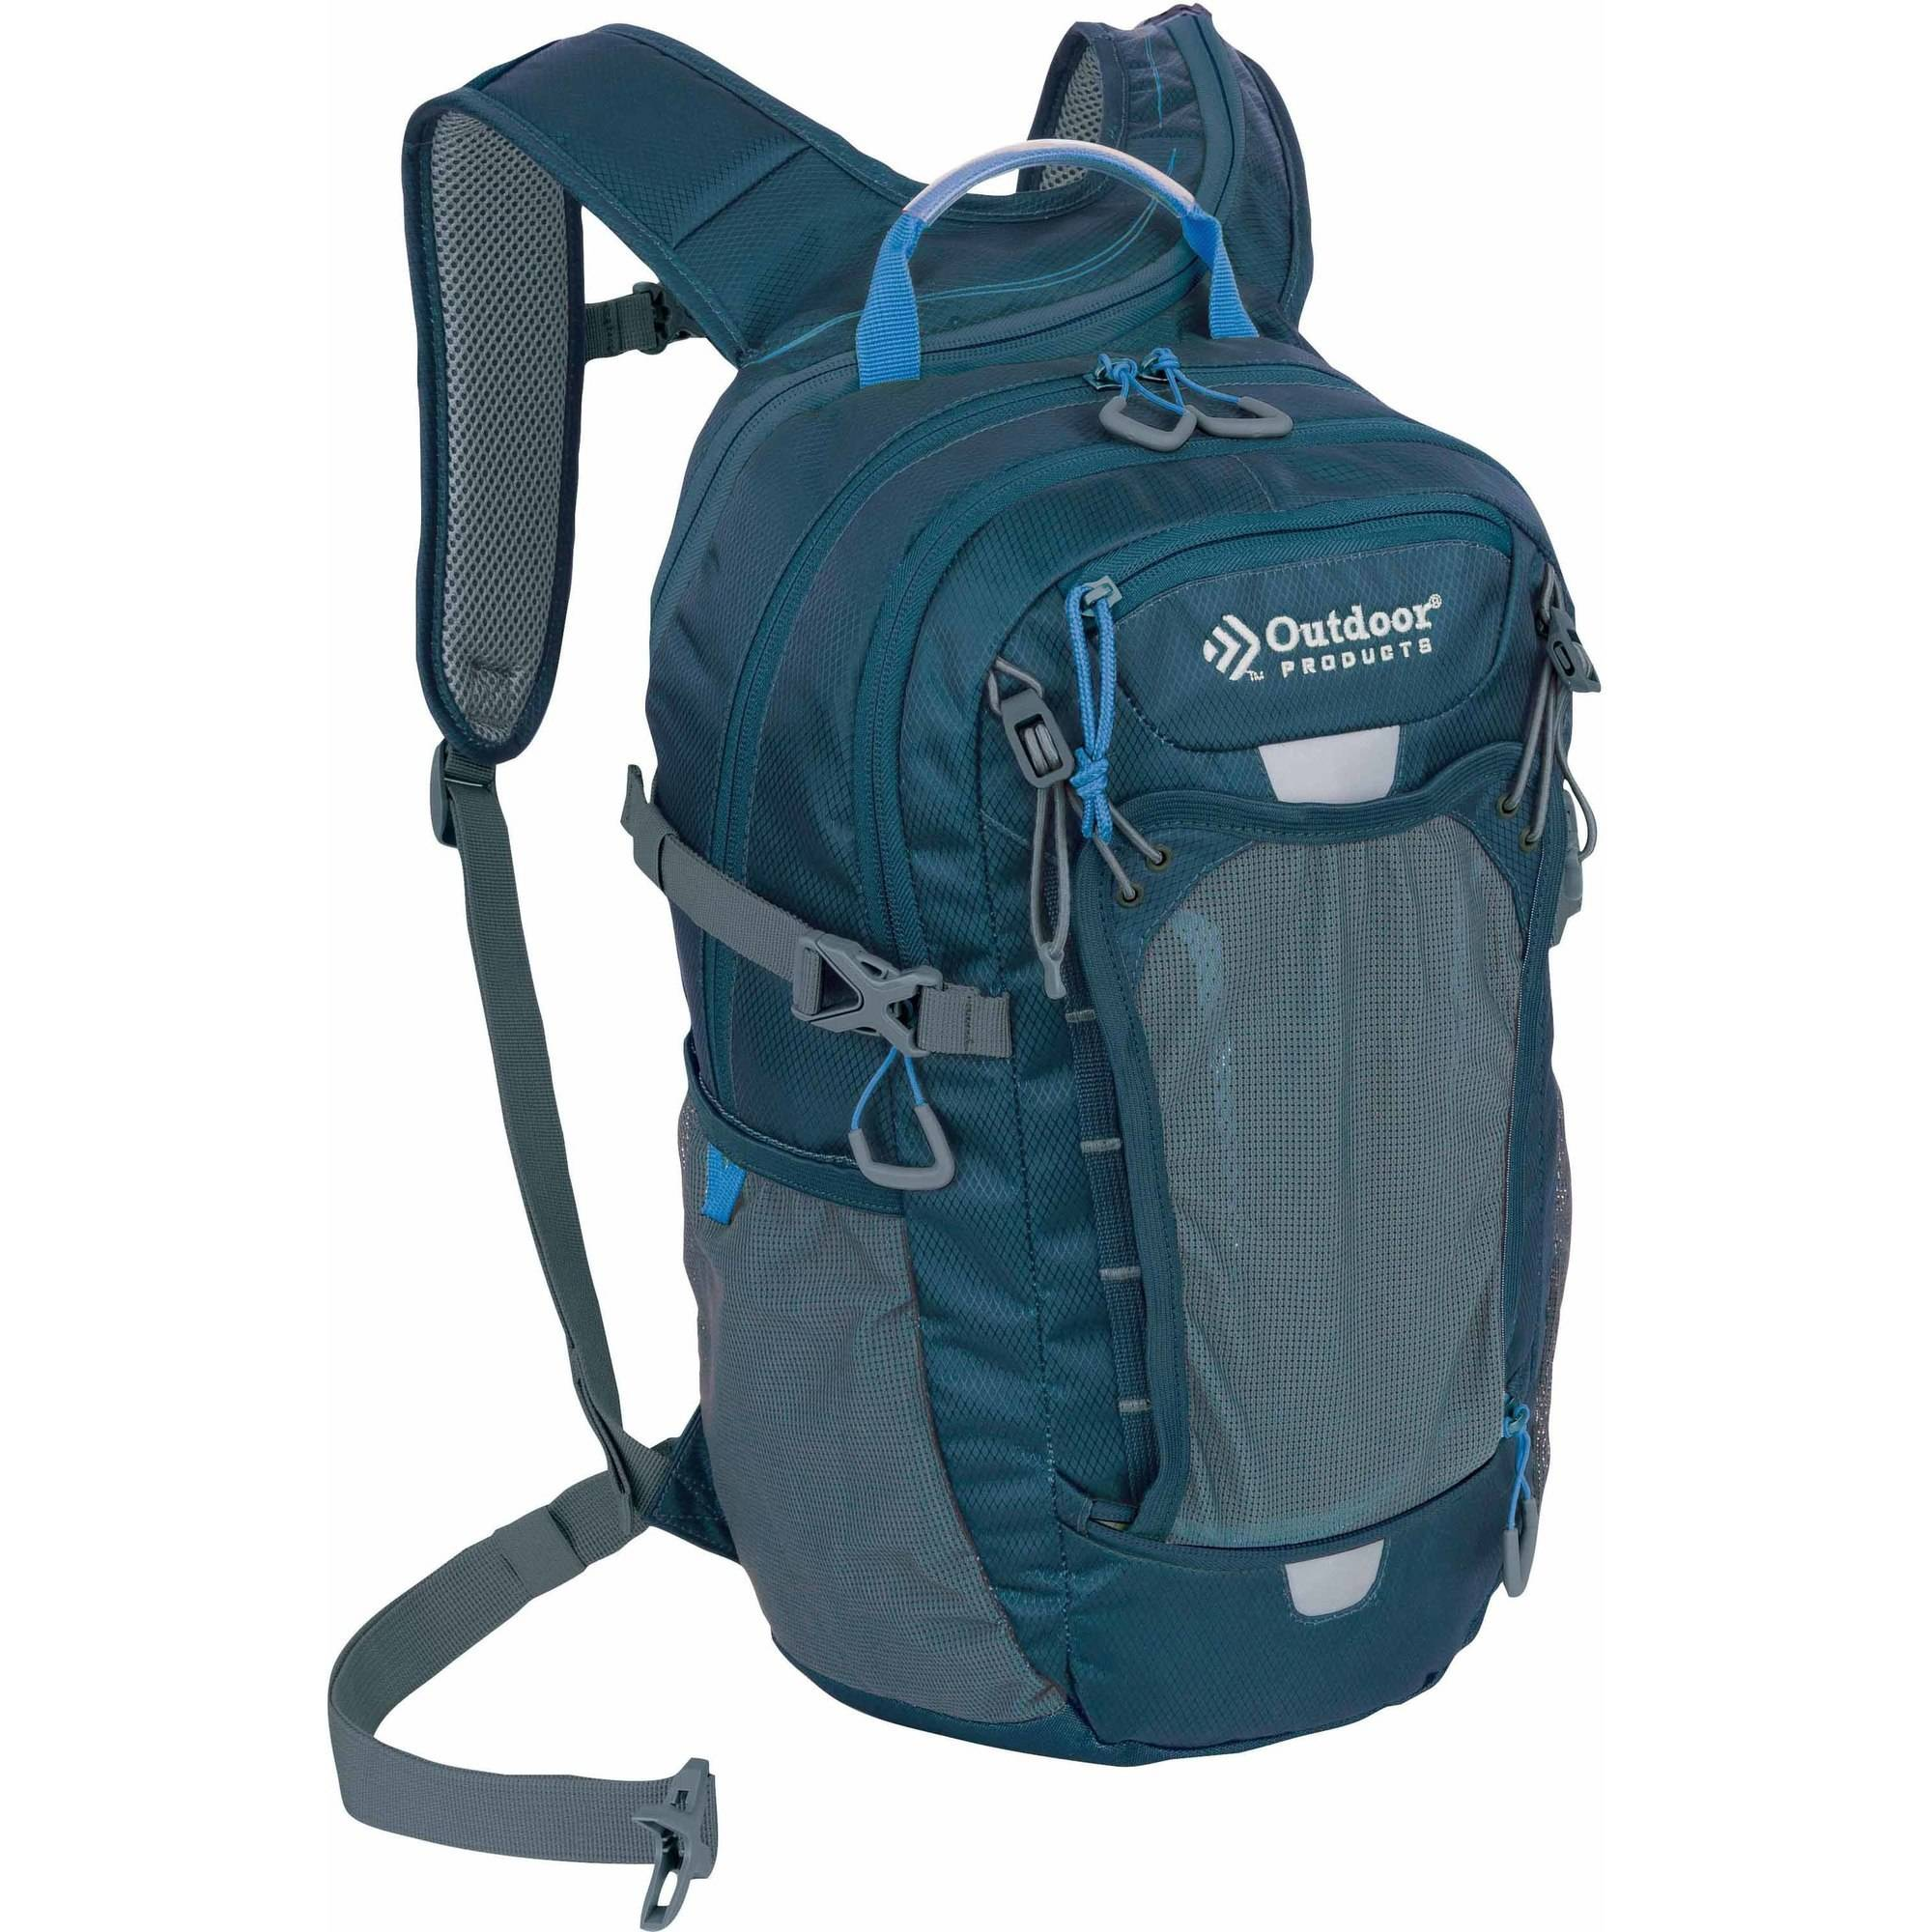 Outdoor Products Hydration Pack, Blue